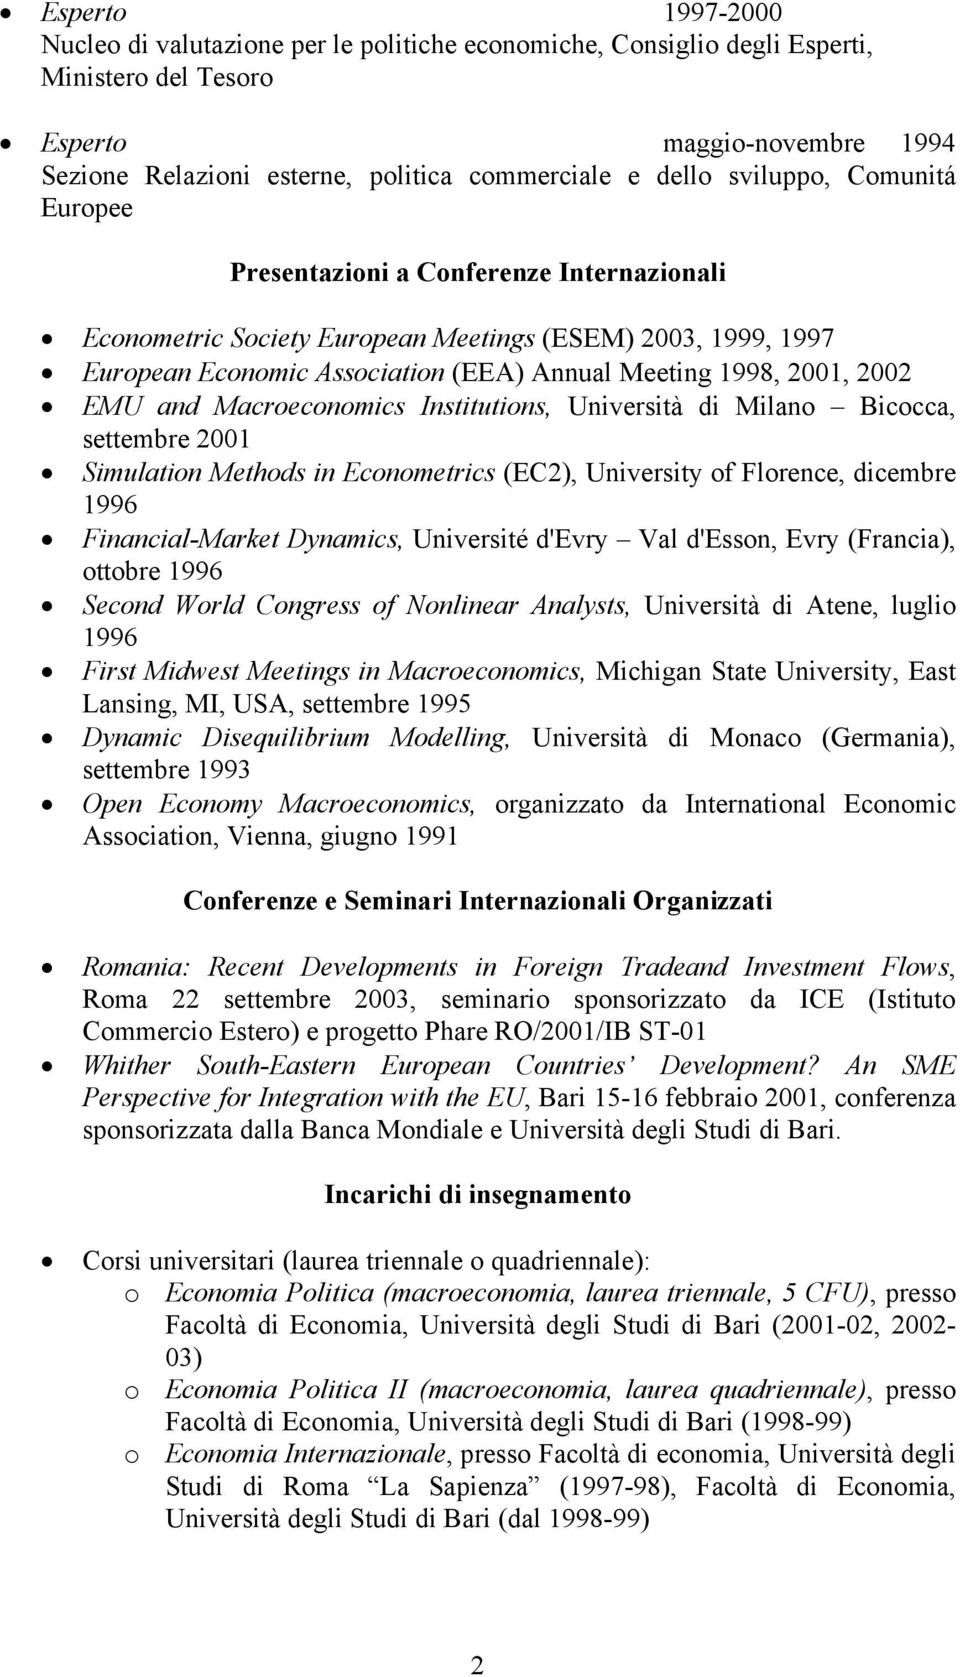 EMU and Macroeconomics Institutions, Università di Milano Bicocca, settembre 2001 Simulation Methods in Econometrics (EC2), University of Florence, dicembre 1996 Financial-Market Dynamics, Université